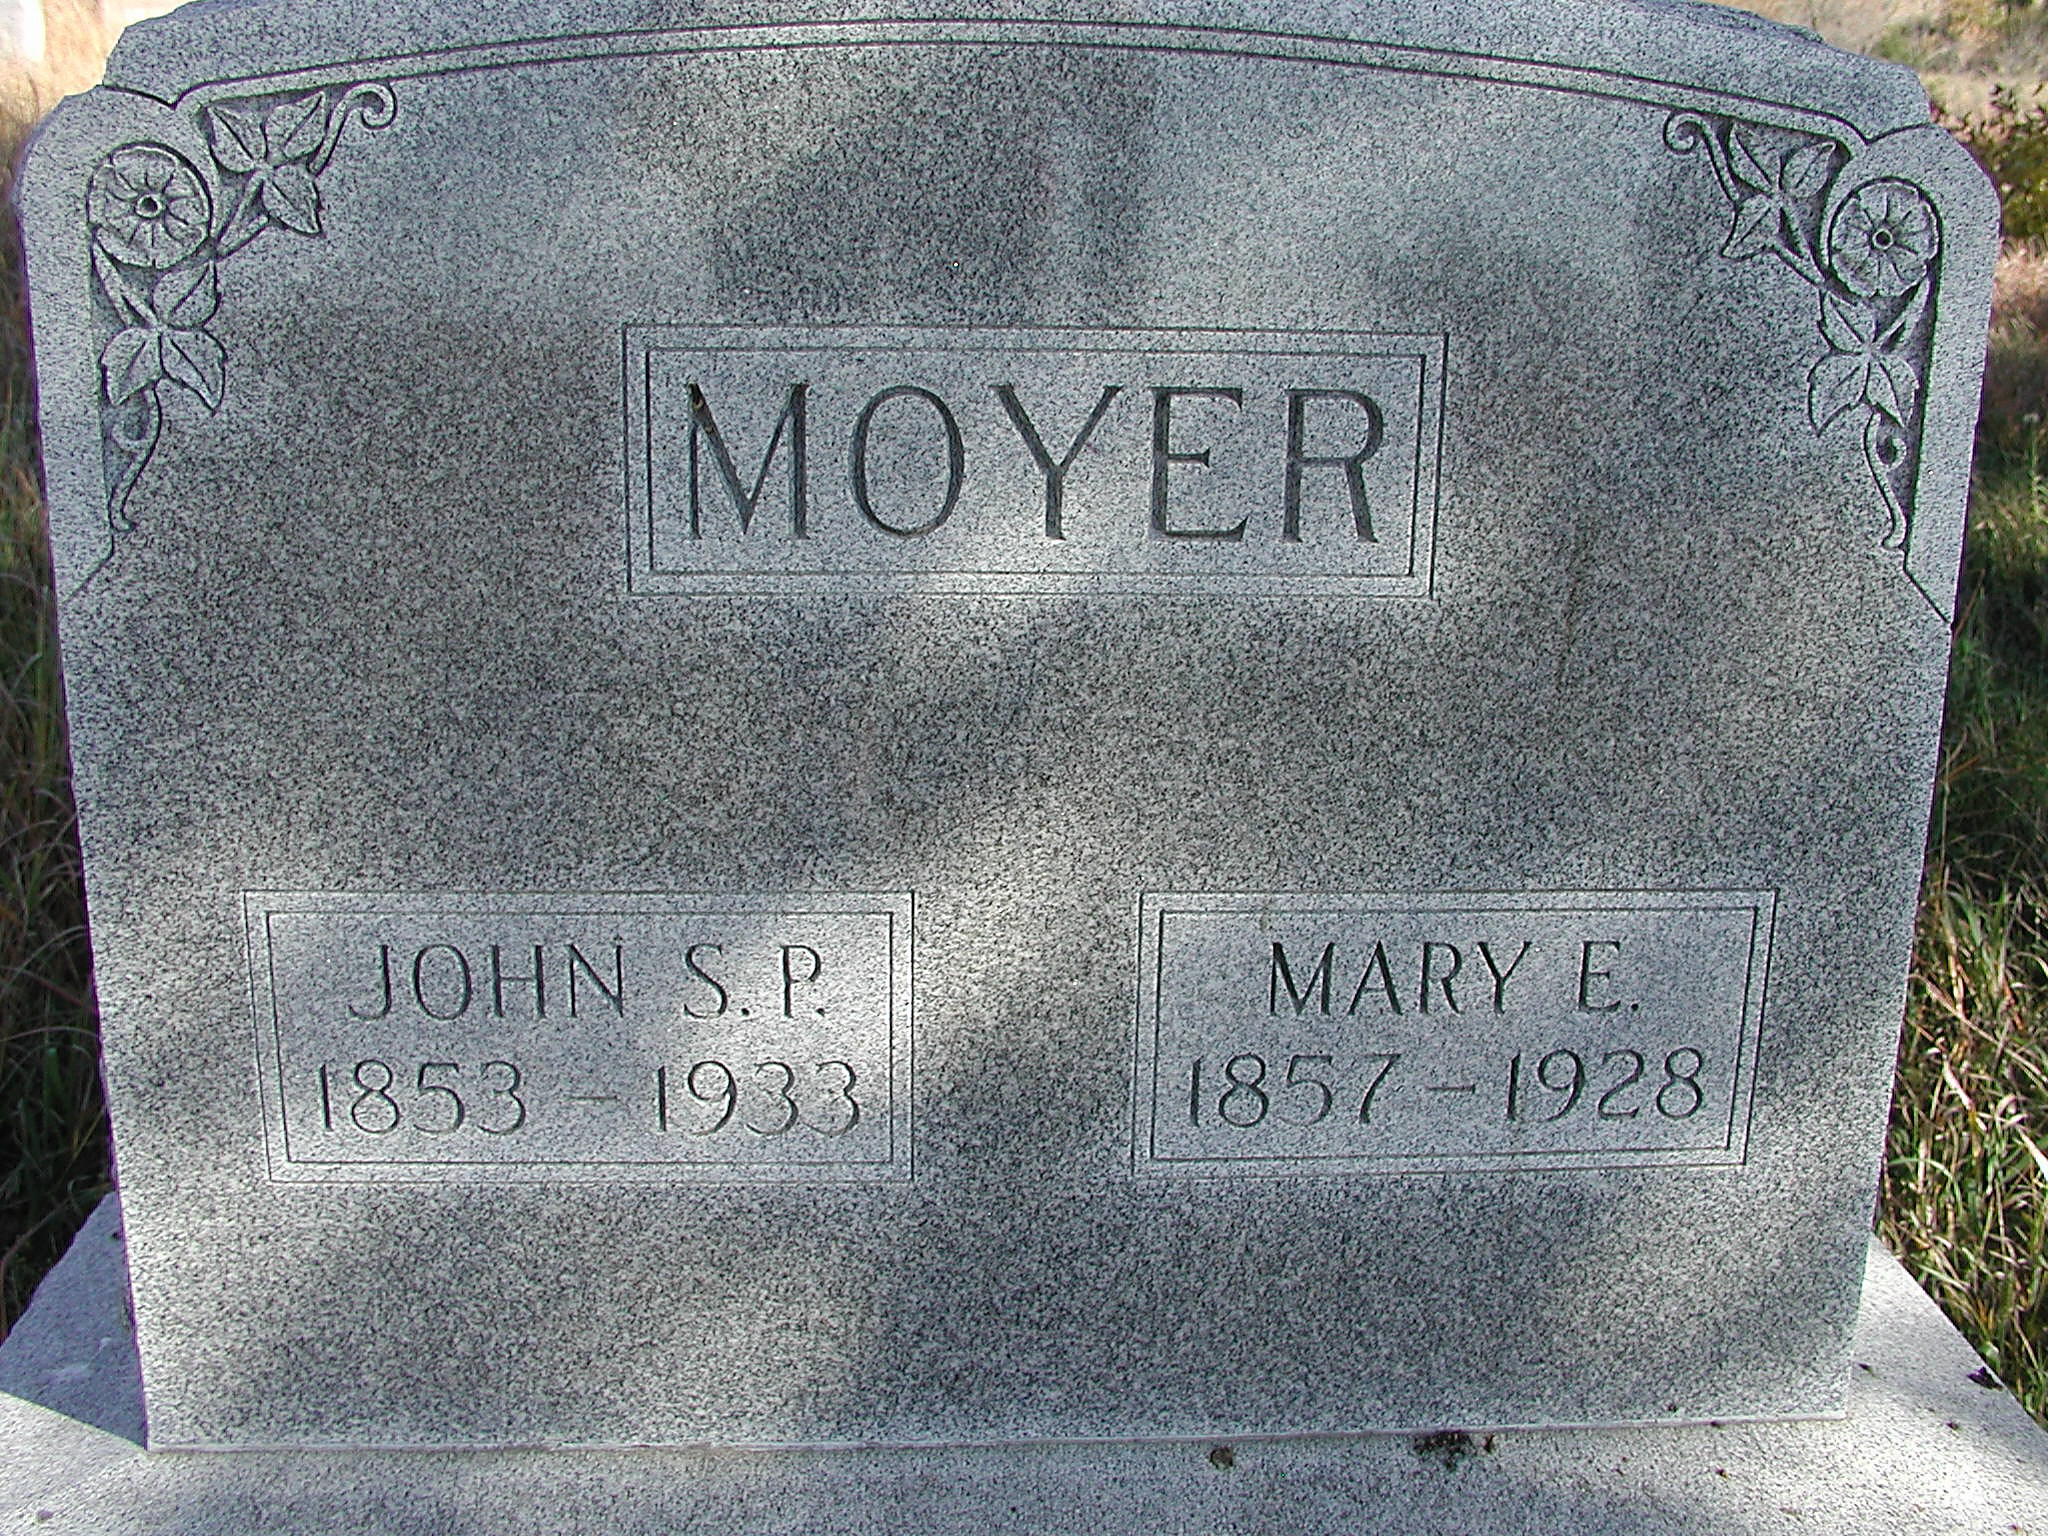 Simon Peter Moyer